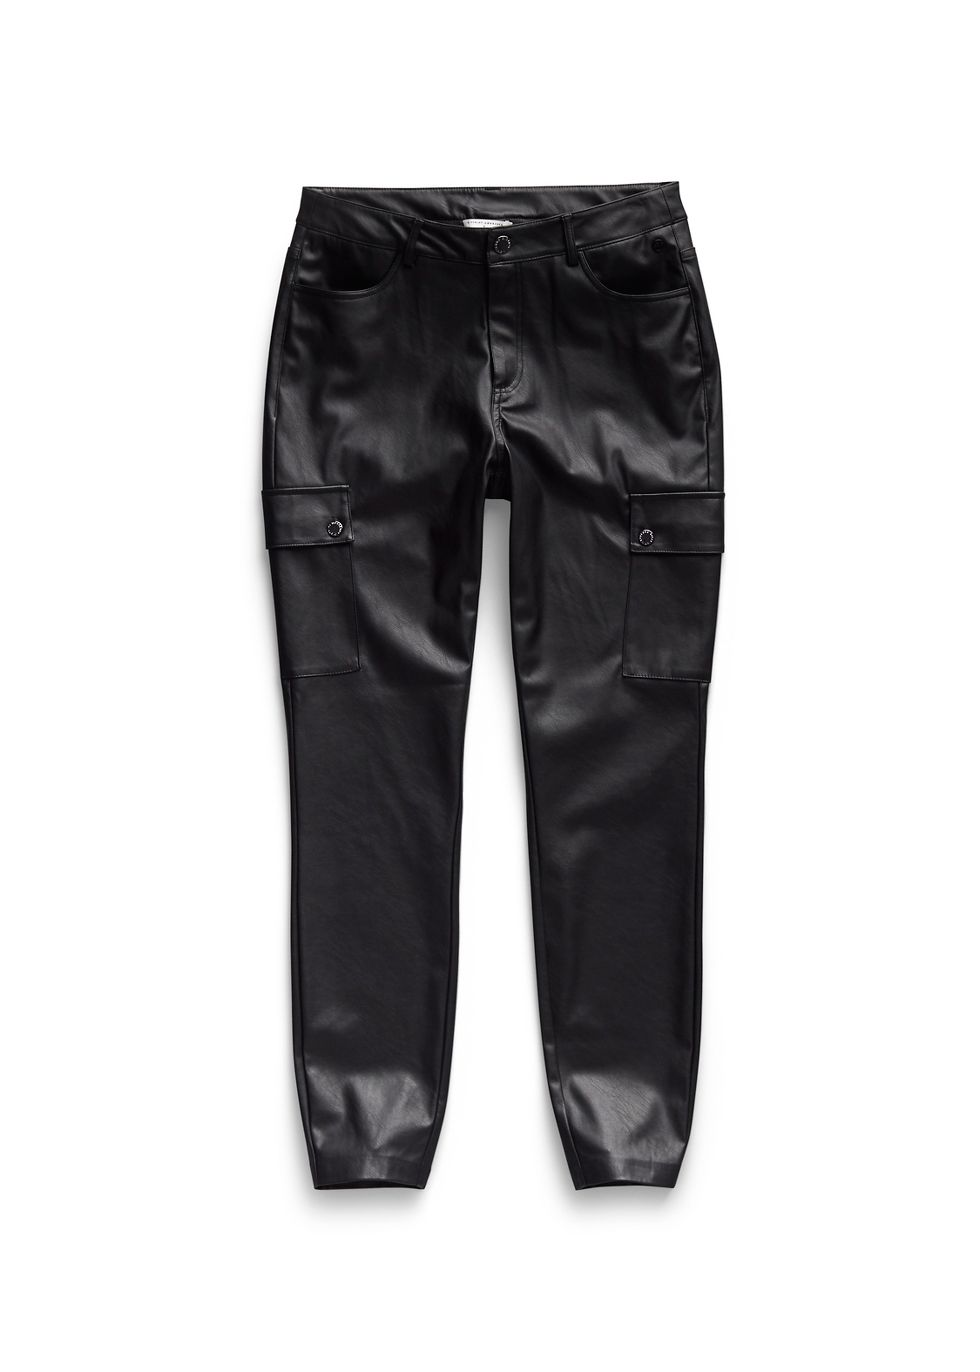 Leather Look Cargo Pants | The Sting